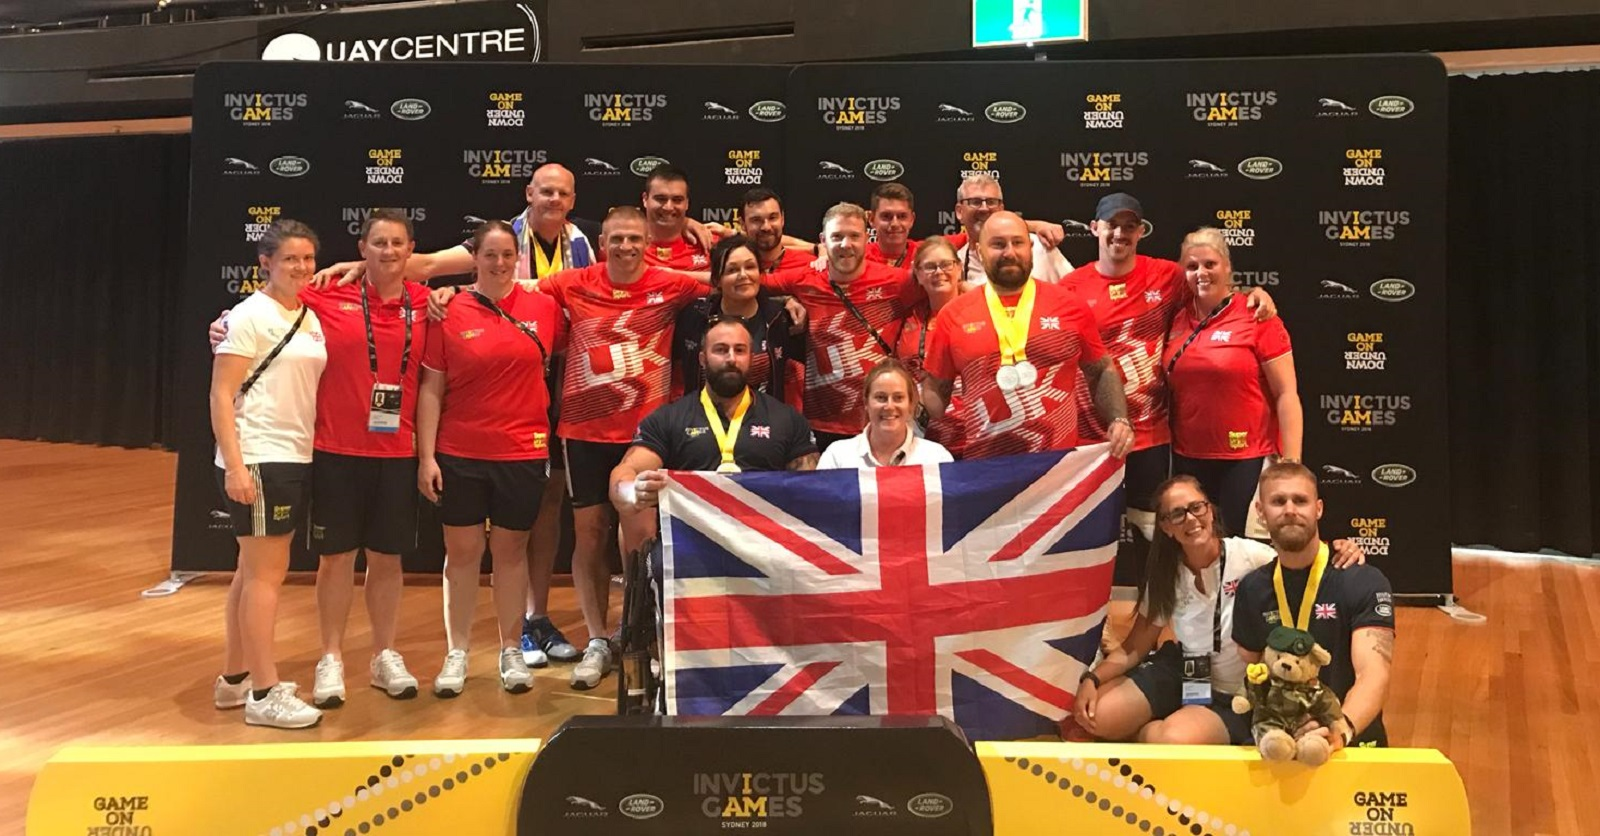 Taking place in Sydney, Australia the Invictus Games hosts an indoor rowing  event like no other. After months of preparation 21 athletes competed in  the ...